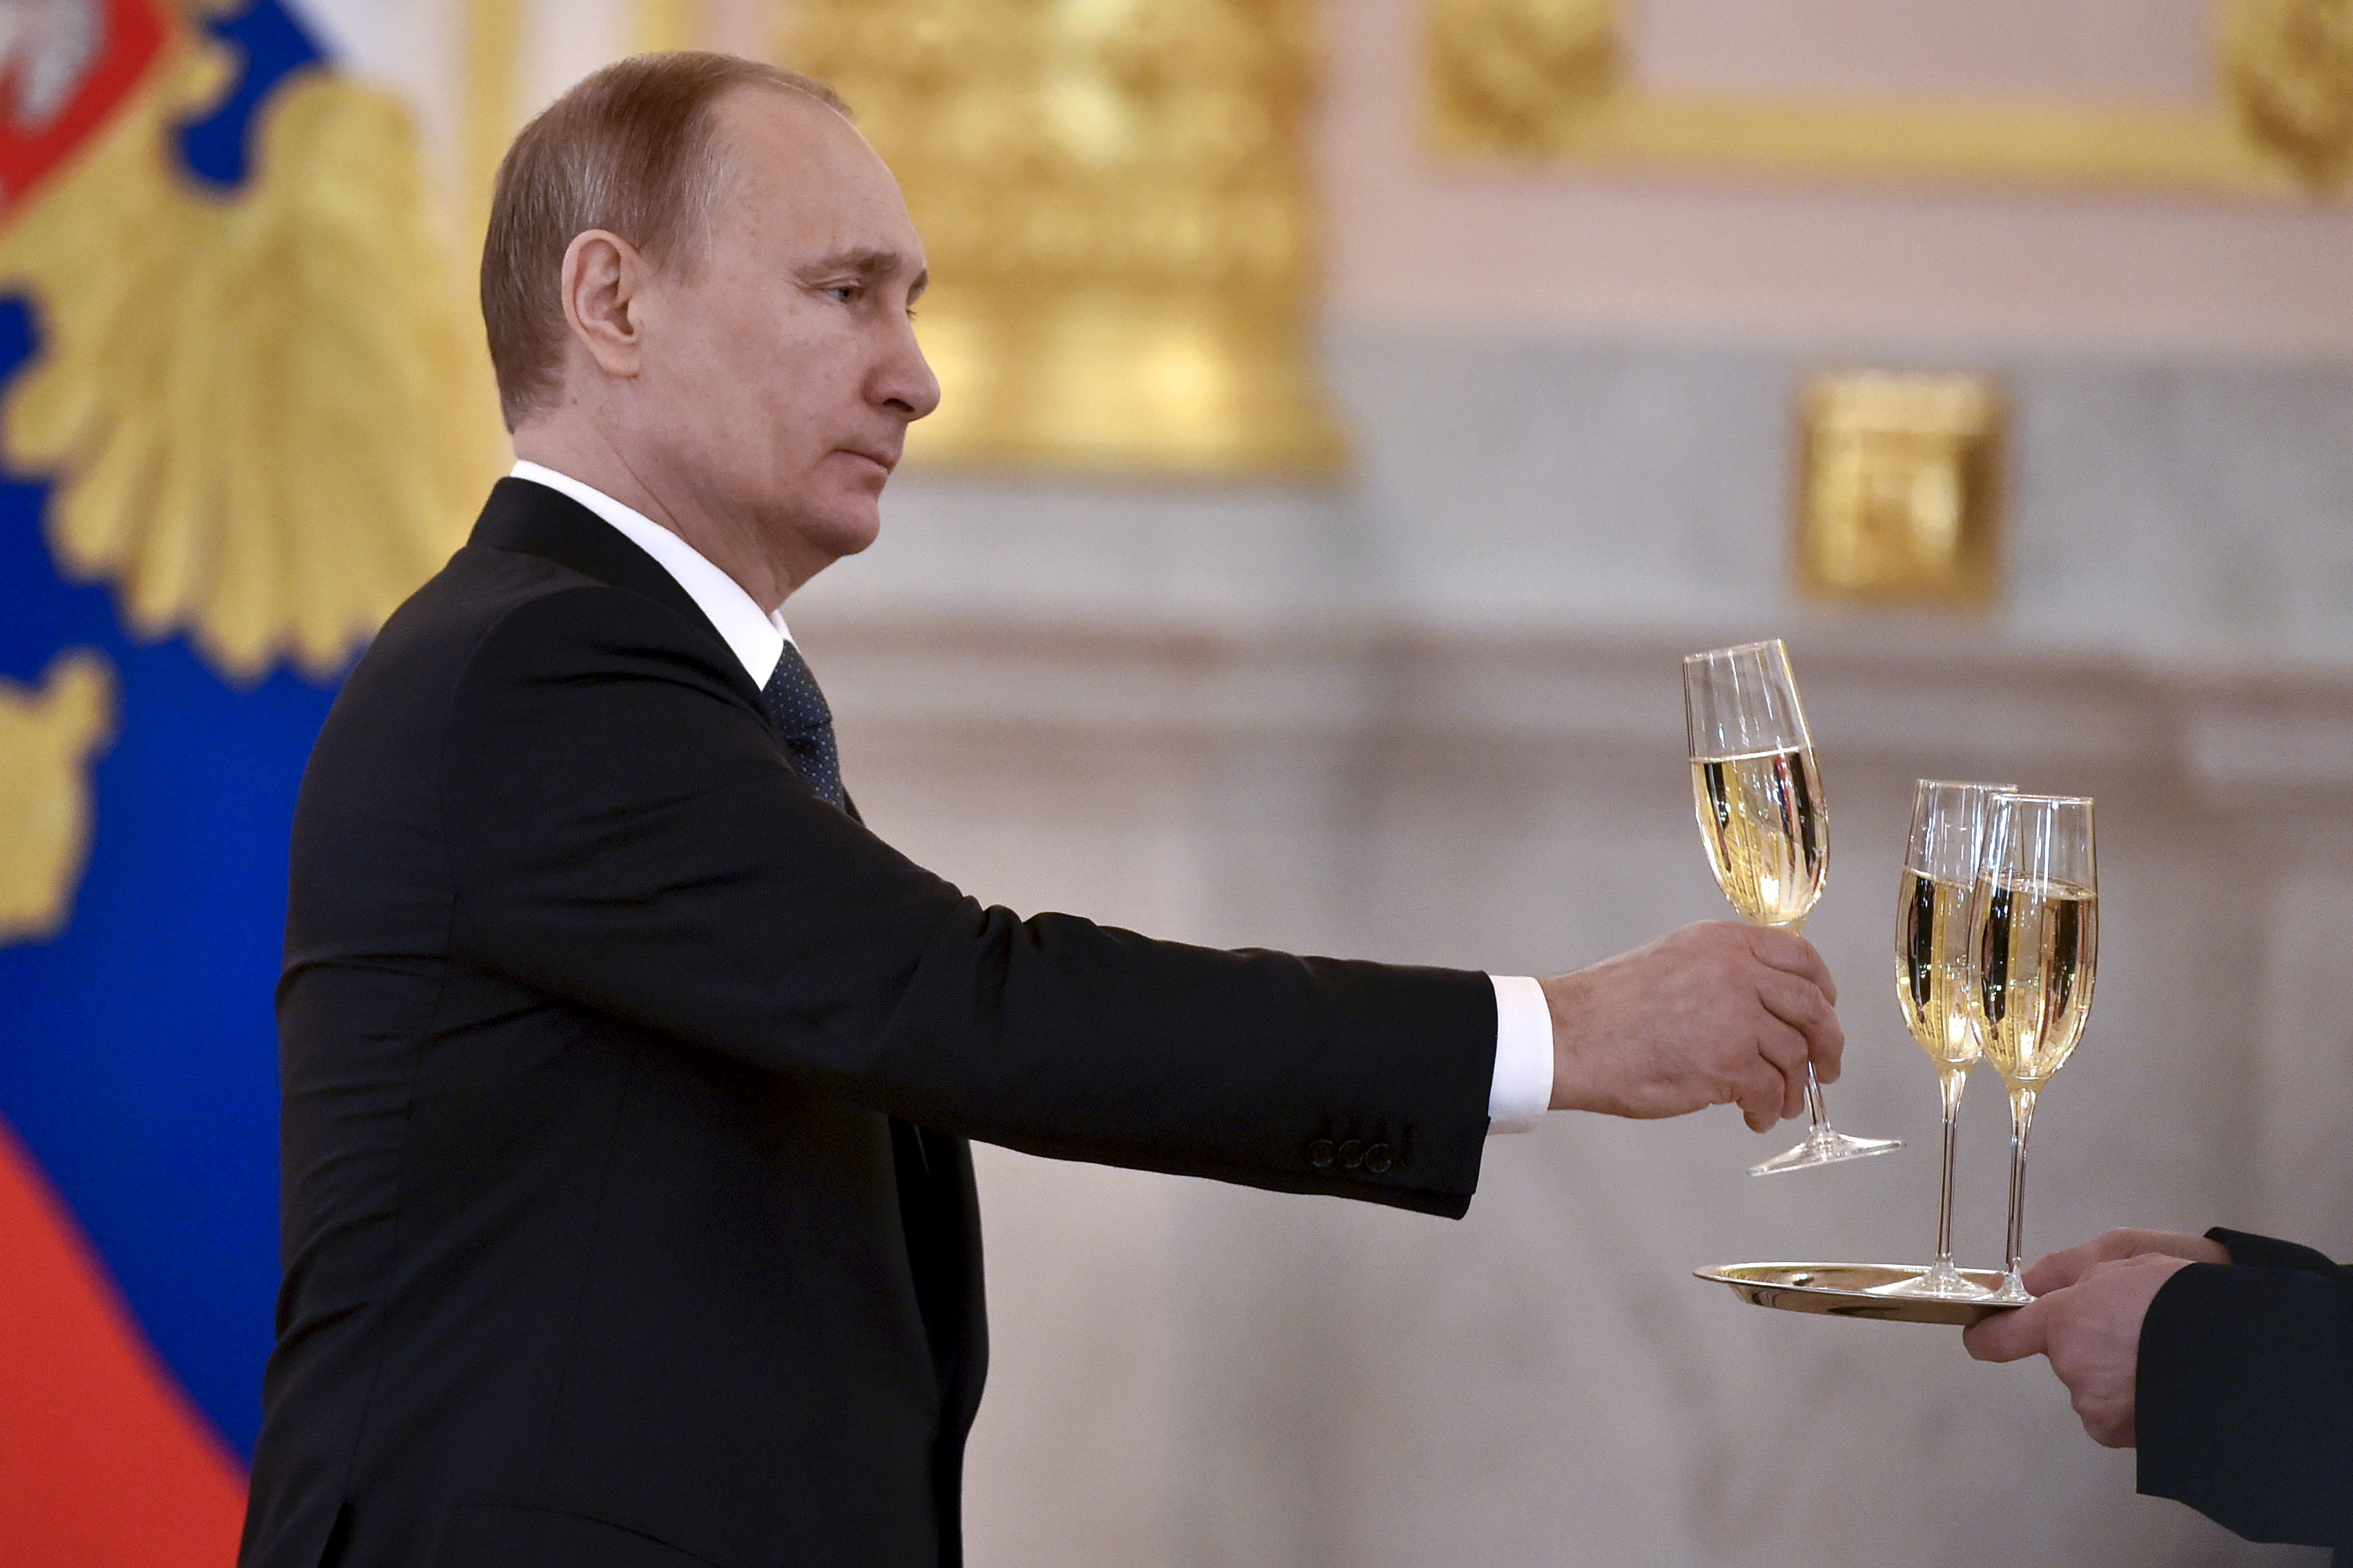 Russia's President Vladimir Putin holds a glass as he attends a ceremony to receive credentials from foreign ambassadors at the Kremlin in Moscow, Russia, April 20, 2016. REUTERS/Kirill Kudryavtsev/Pool/File Photo